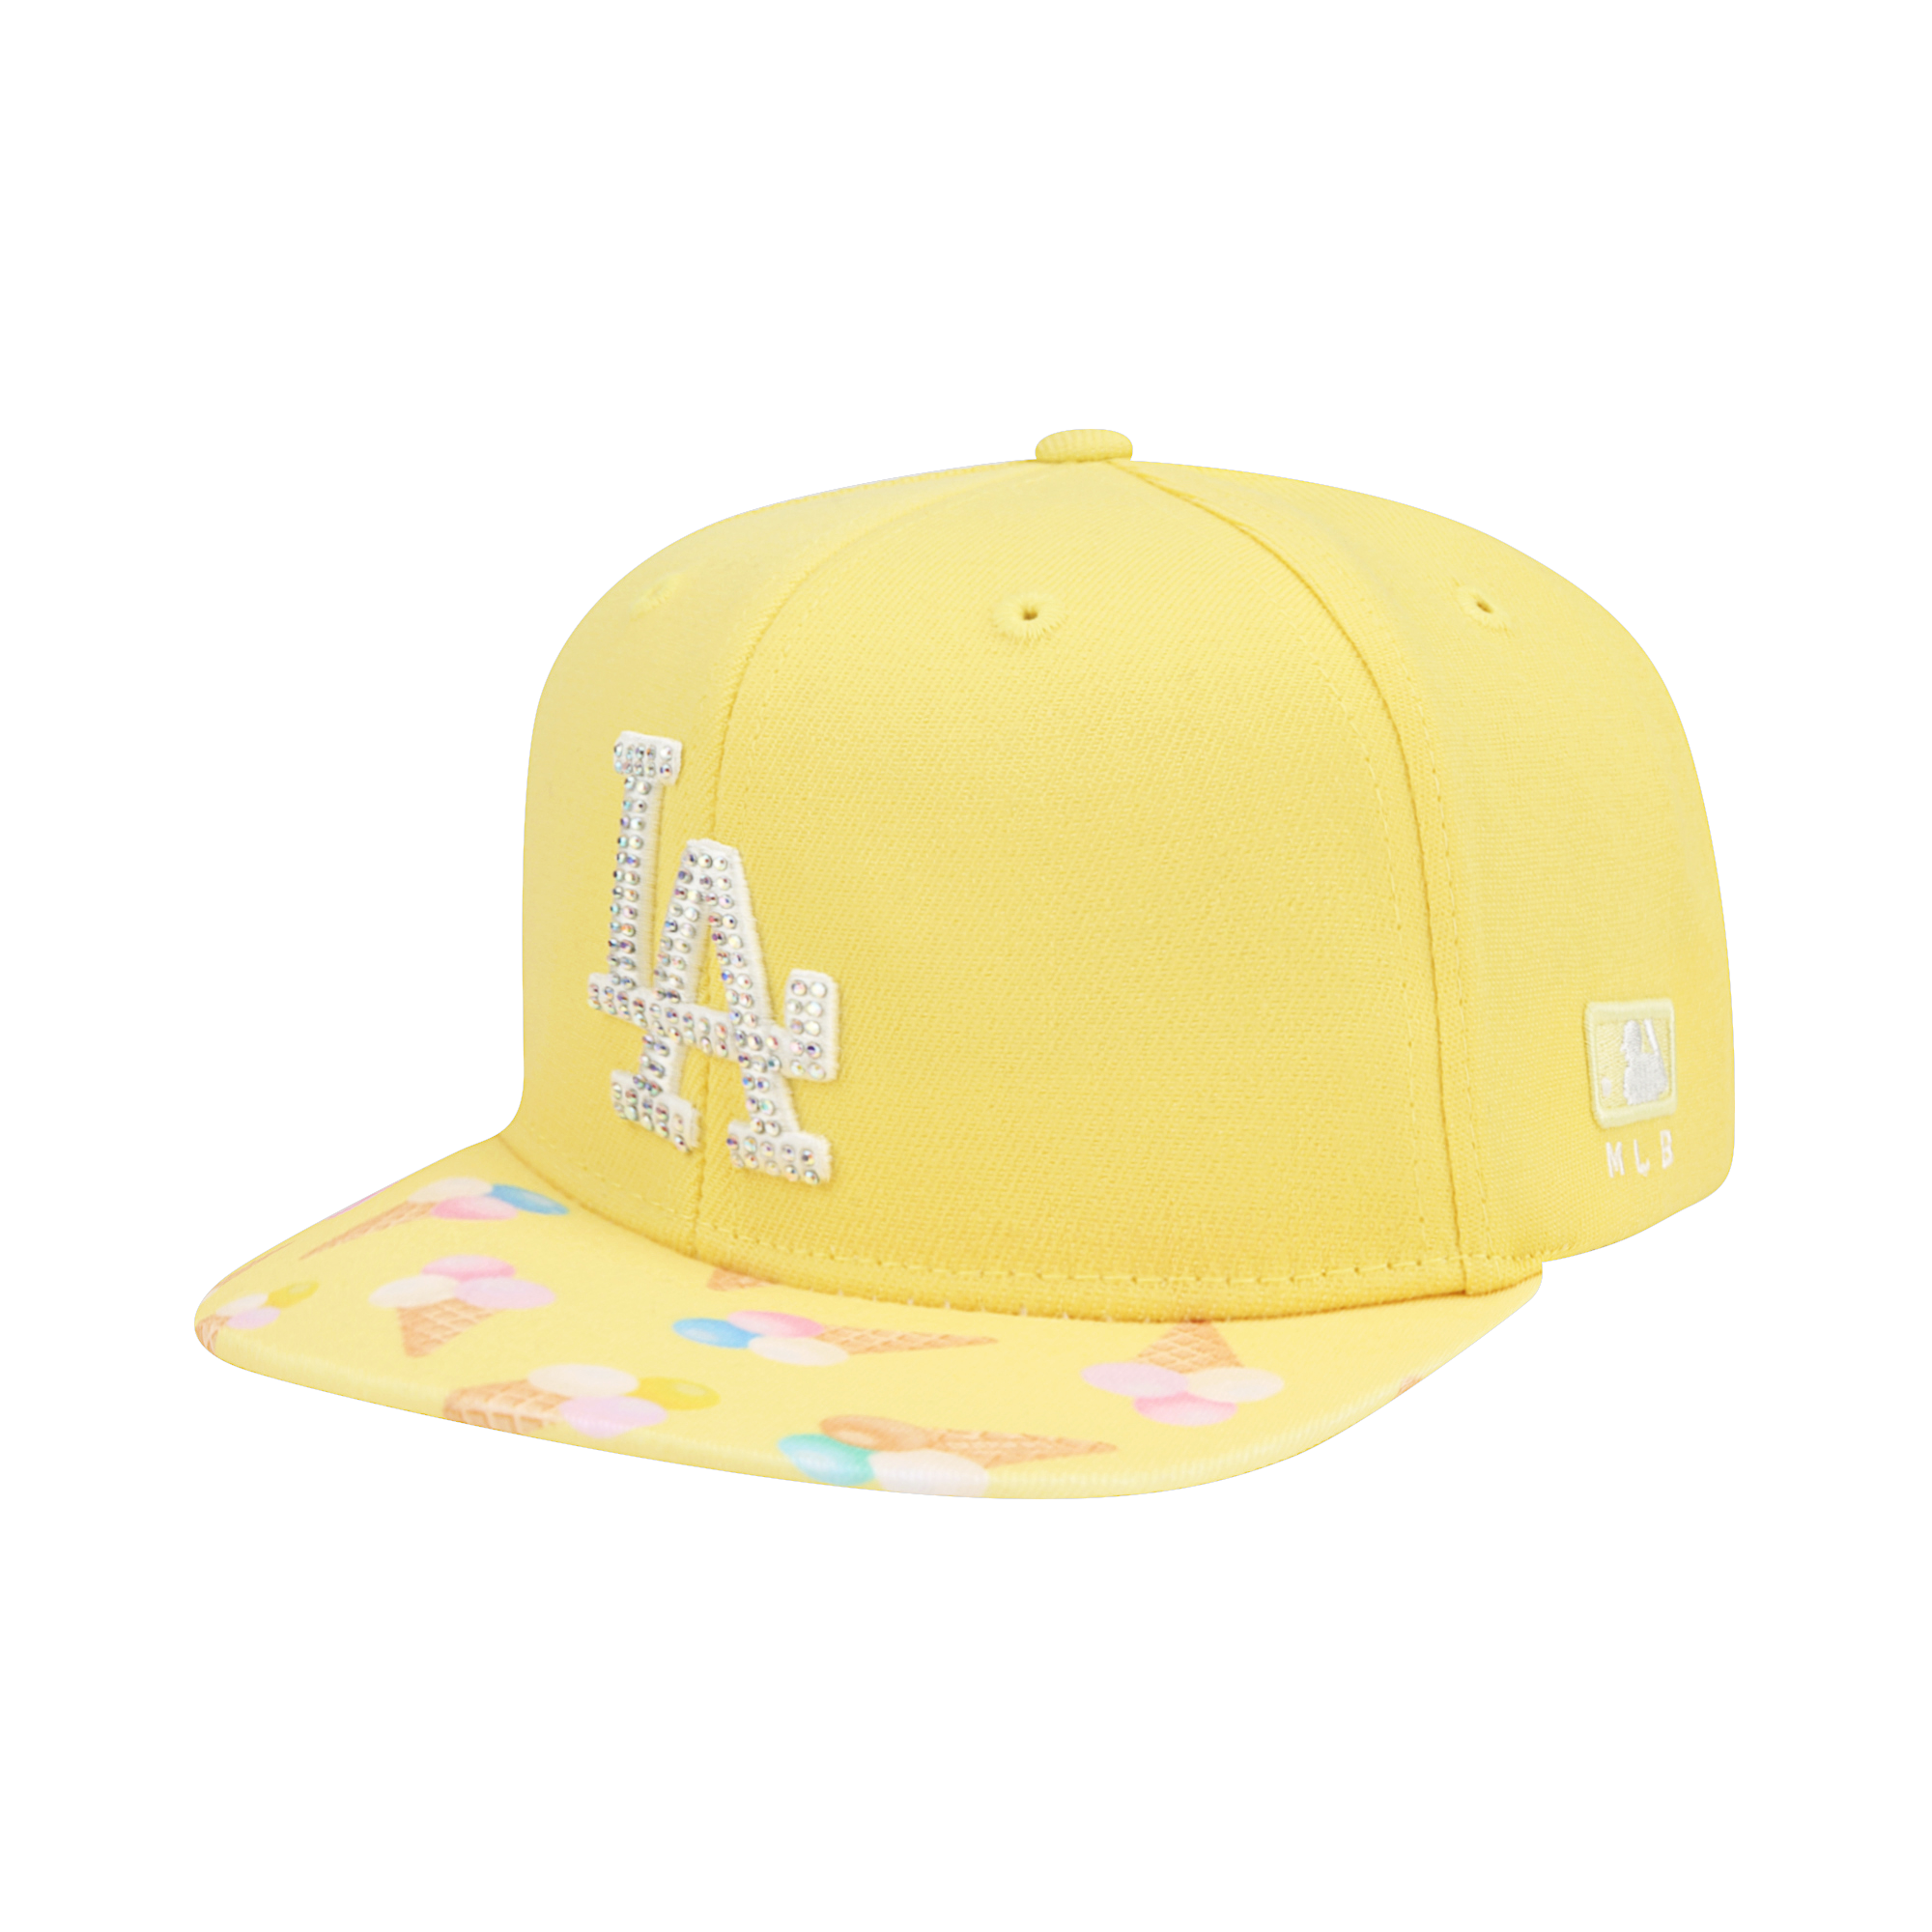 LA DODGERS PICNIC IN THE PARK FLAT VISOR SNAPBACK